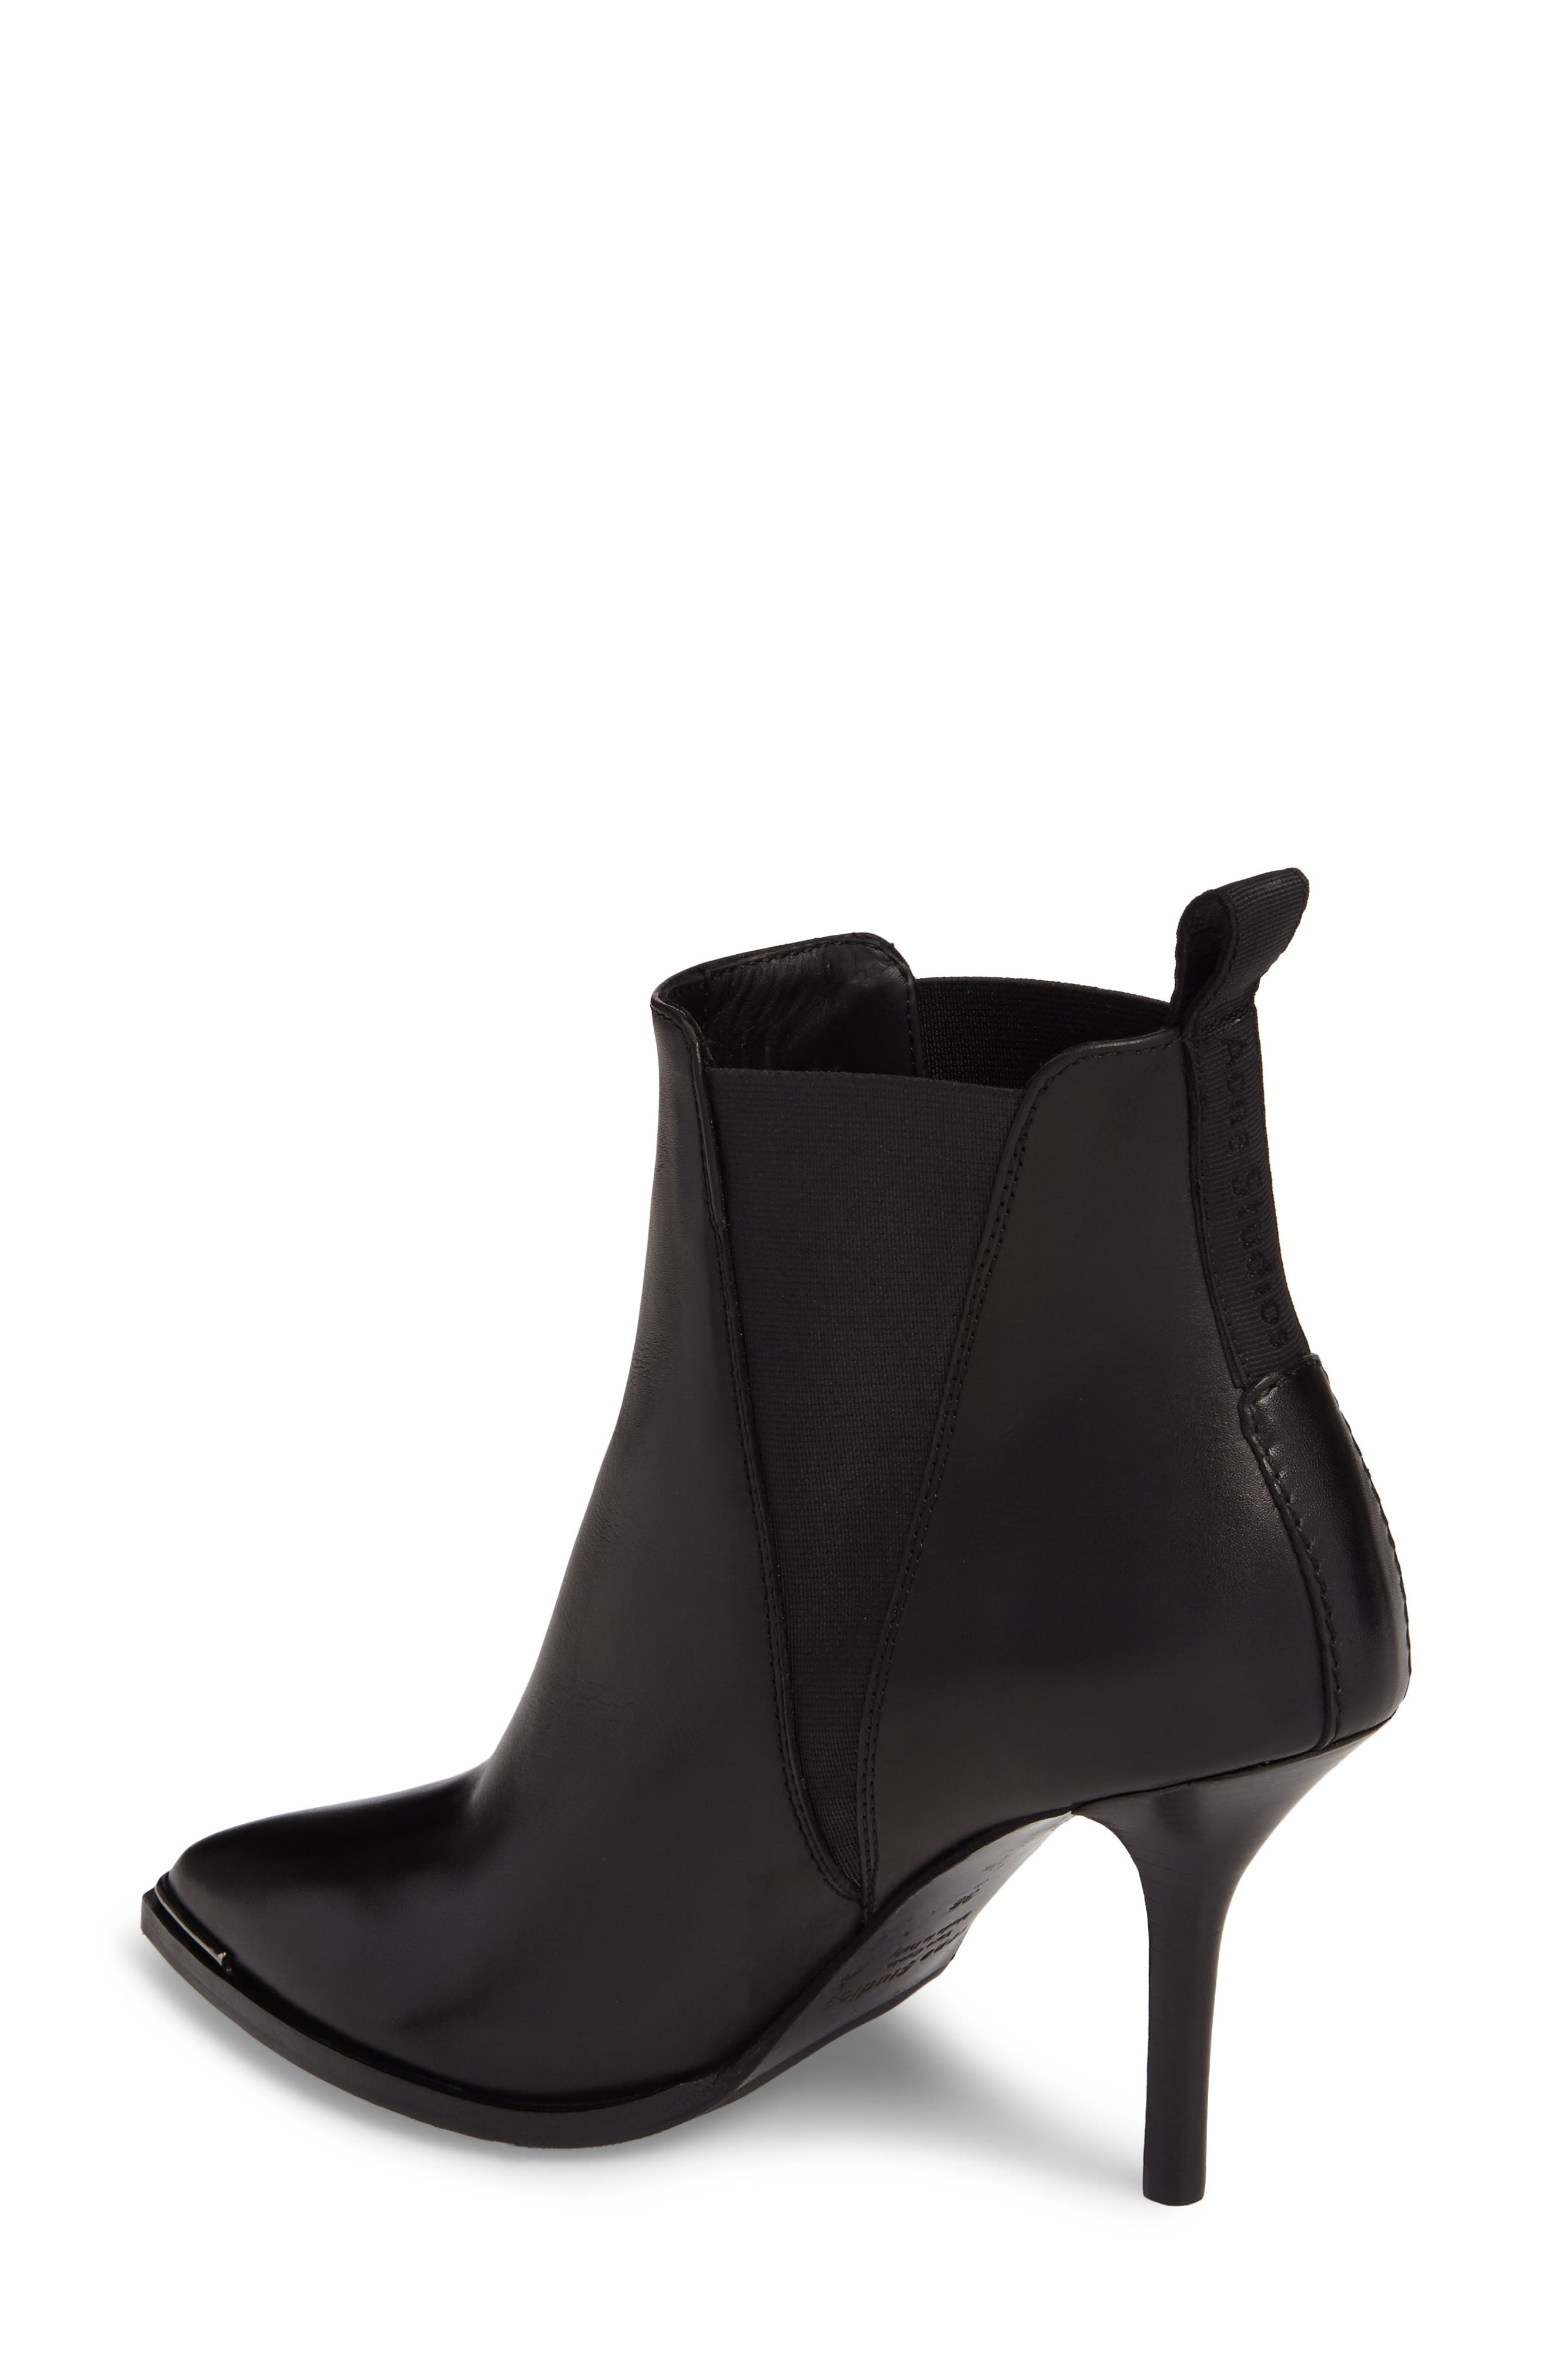 Jemma Pointy Toe Bootie,                             Alternate thumbnail 2, color,                             001